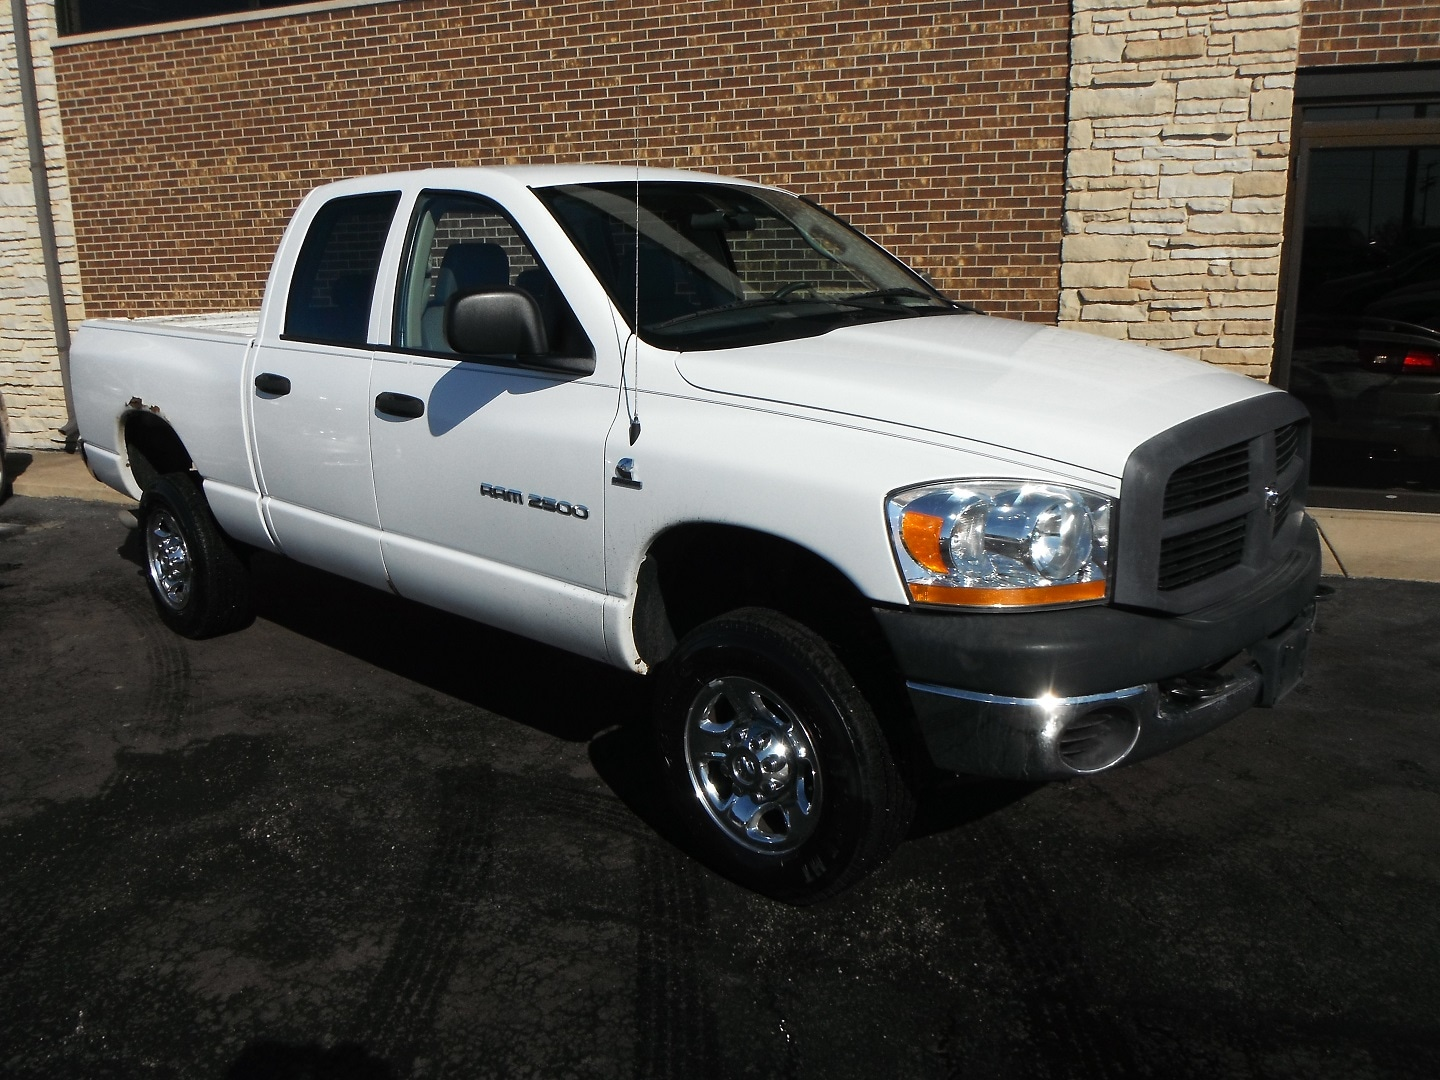 2006 dodge ram 2500 trx4 off road quad cab 4wd for sale cargurus. Black Bedroom Furniture Sets. Home Design Ideas